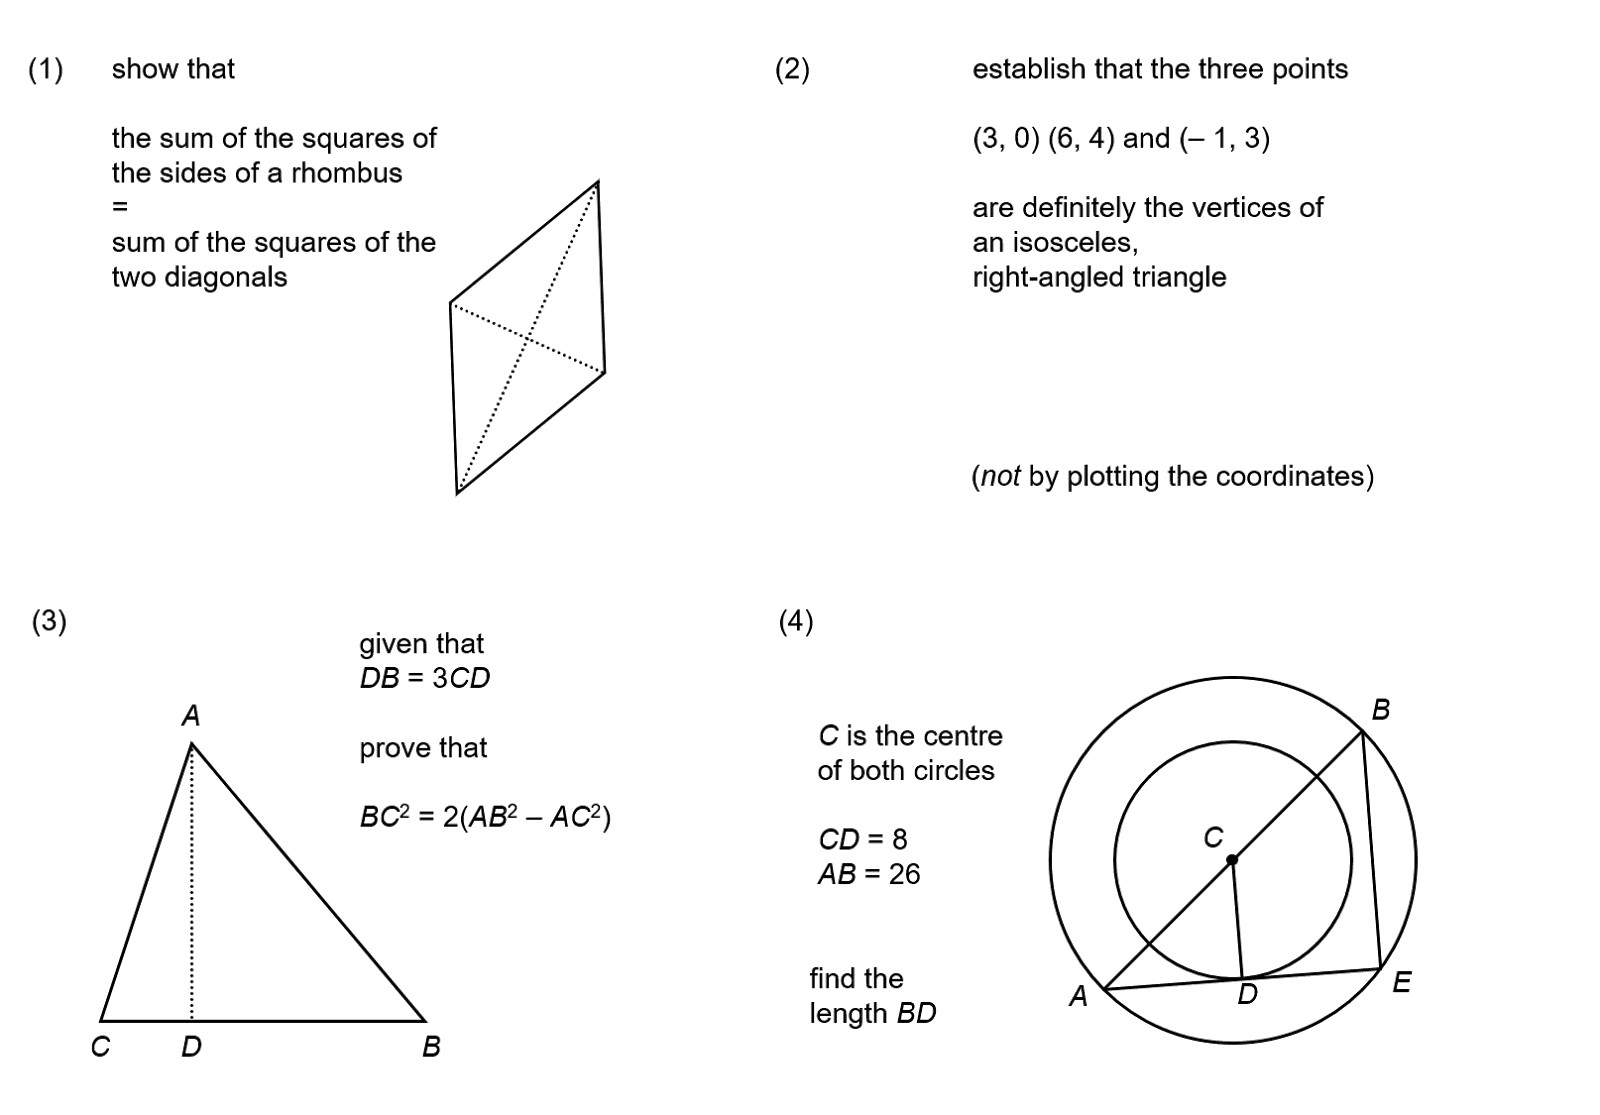 MEDIAN Don Steward mathematics teaching: pythagoras questions